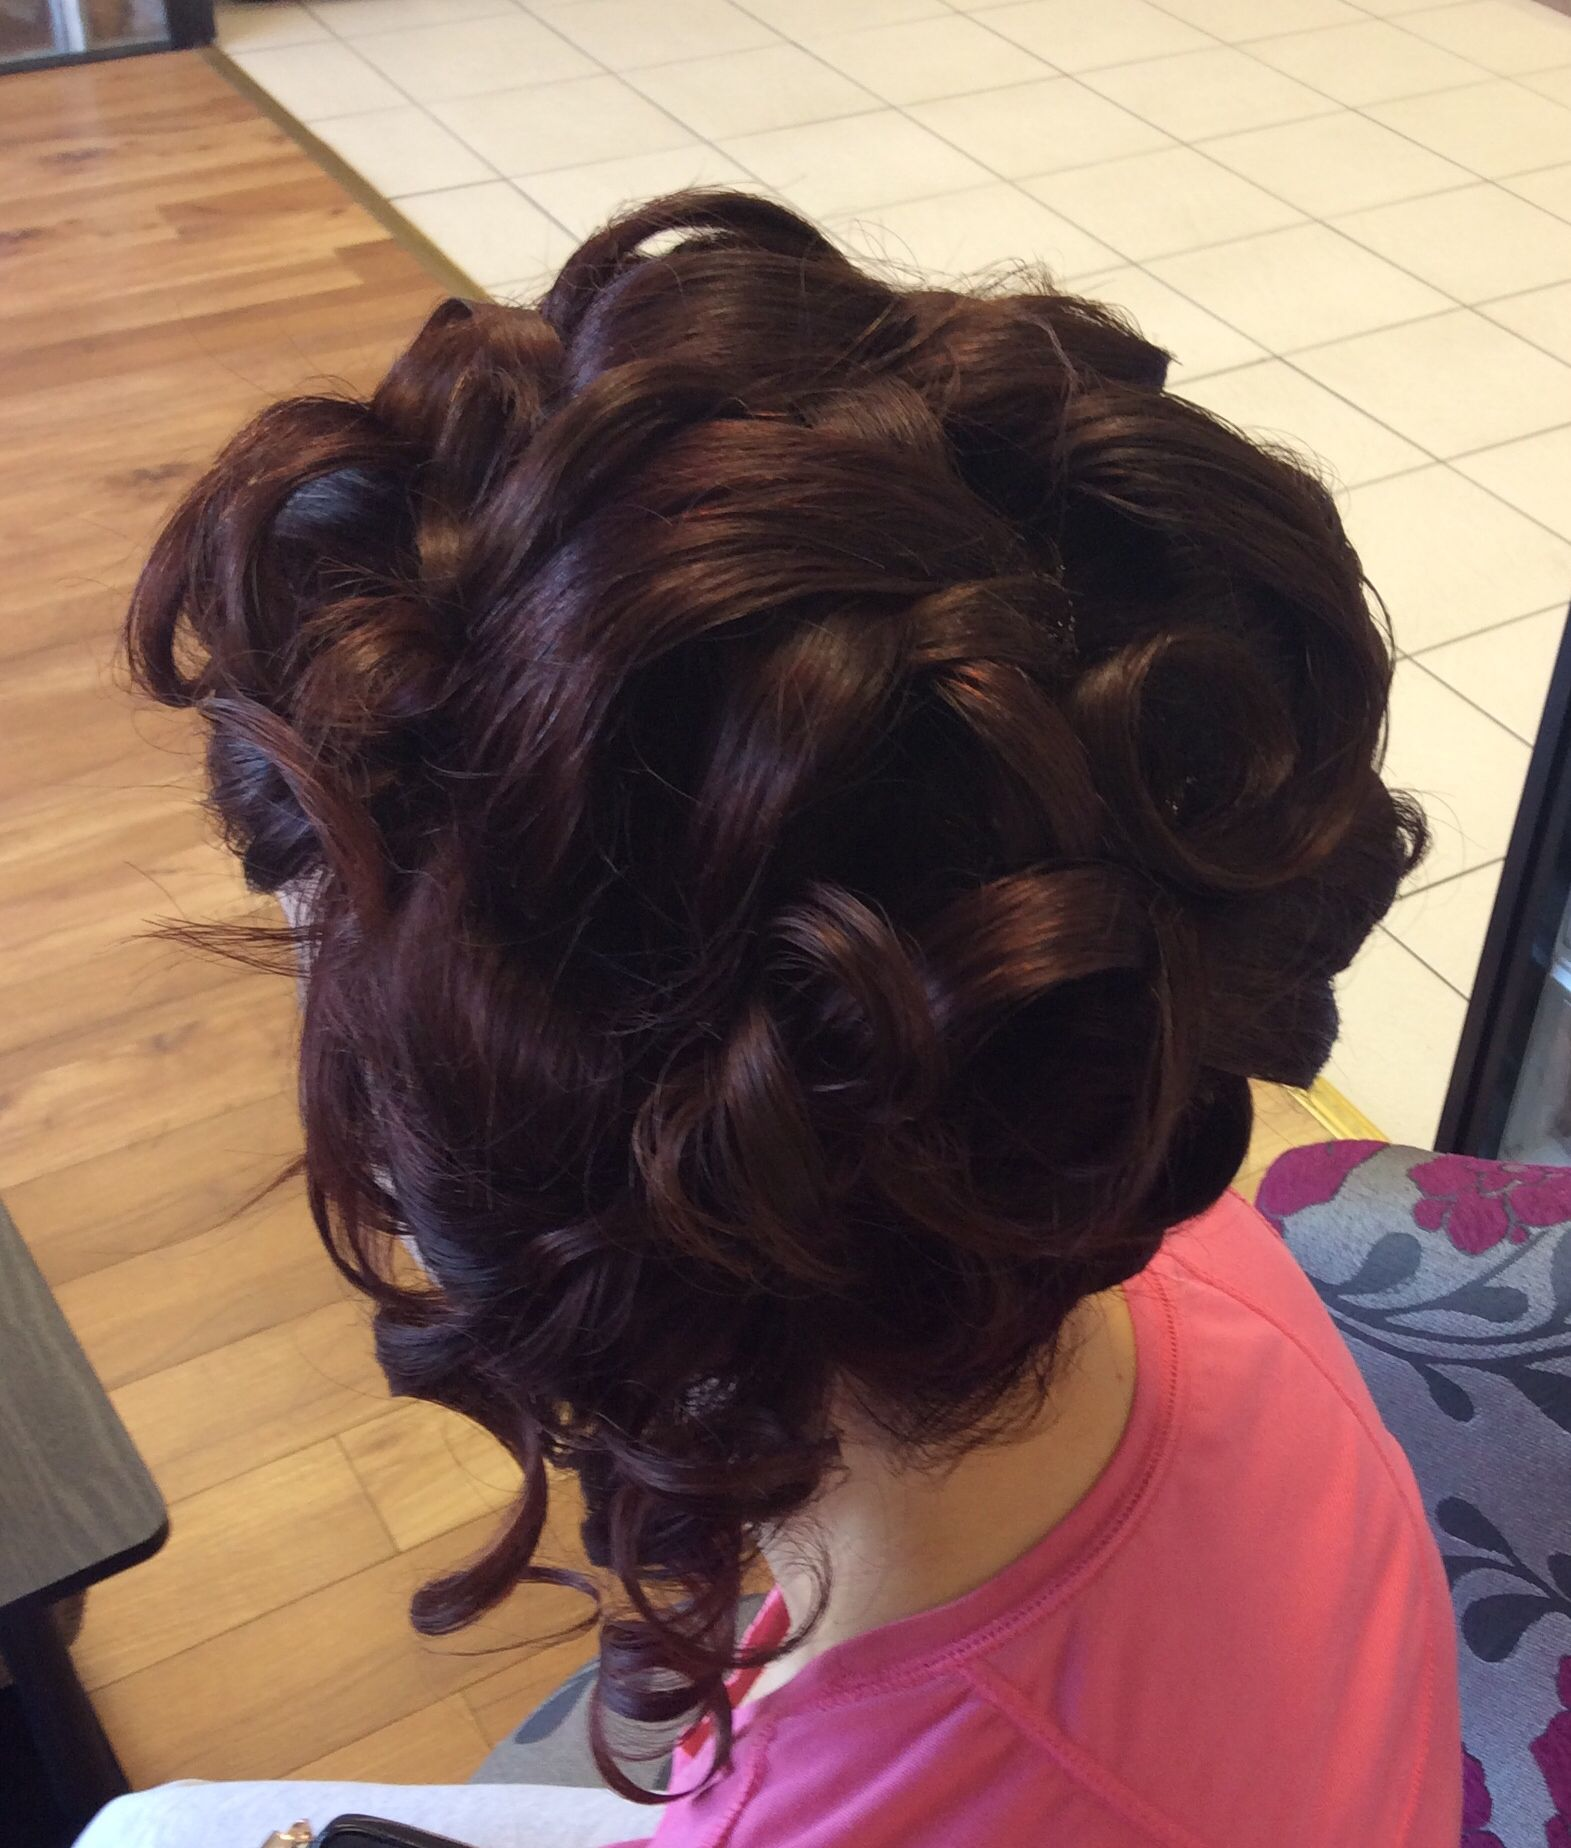 A tonged updo for a smooth finish perfect for a formal occasion